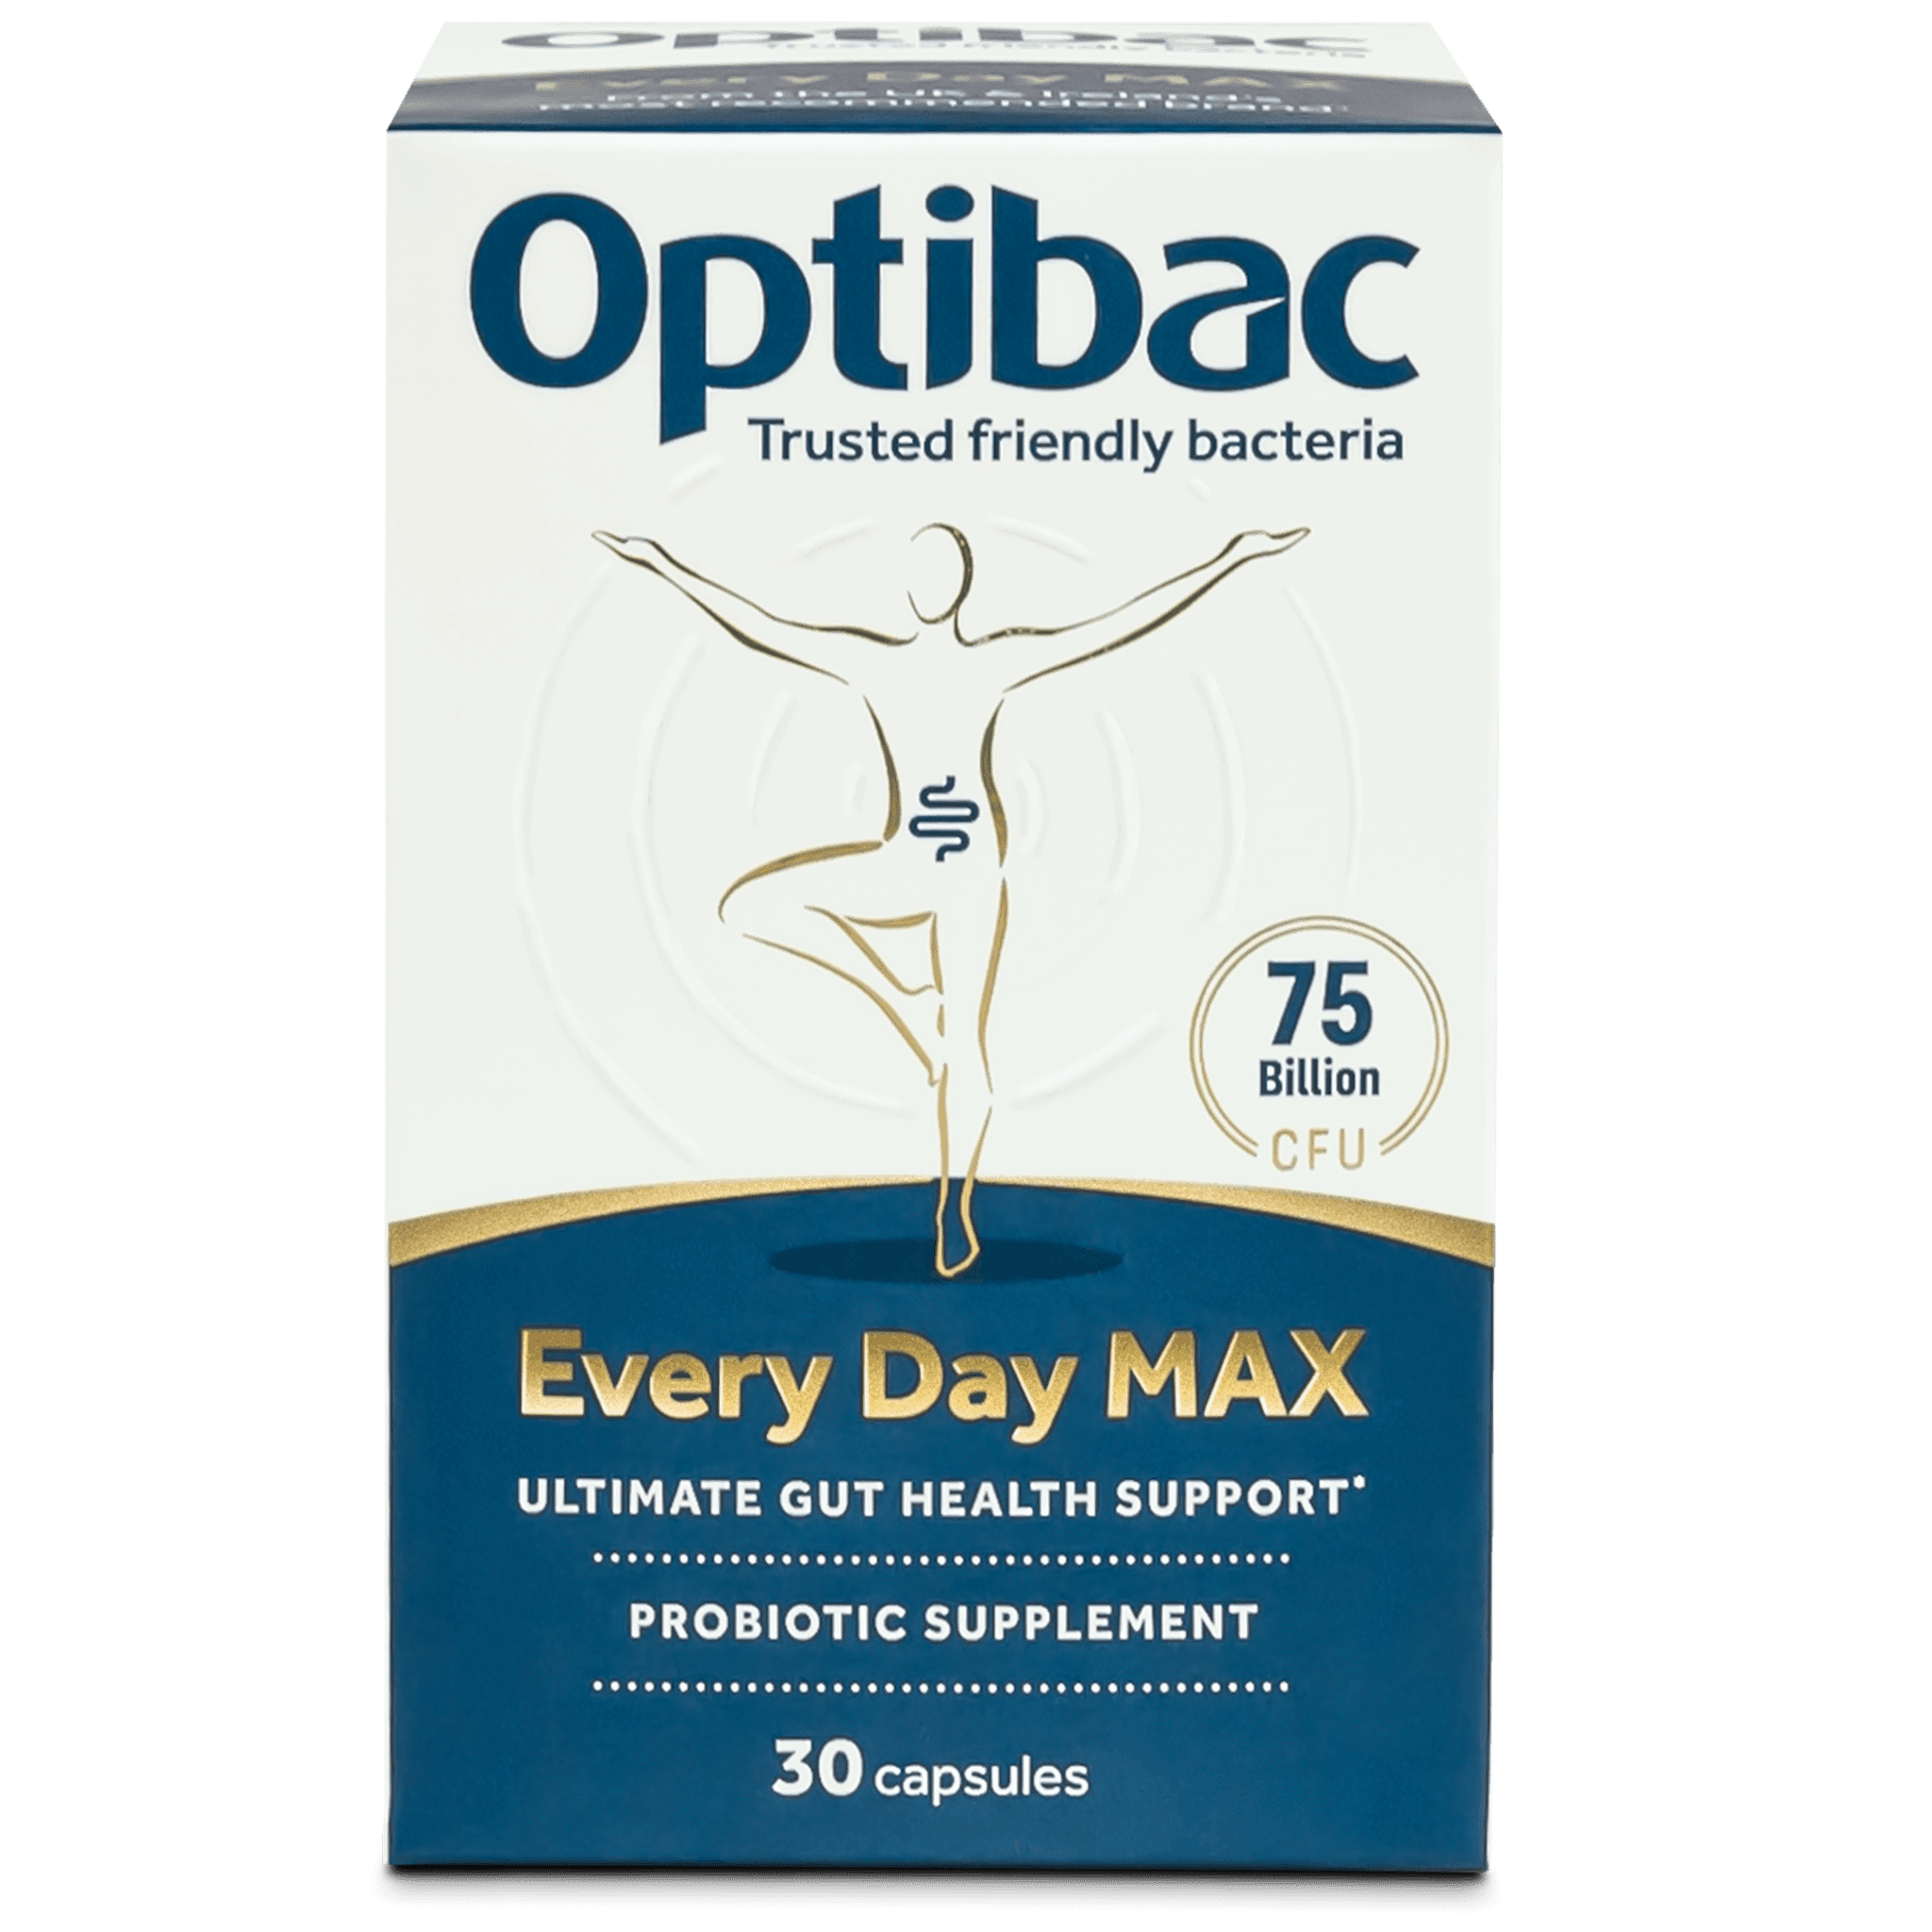 Optibac Probiotics | Every Day MAX | front of pack | 30 capsules